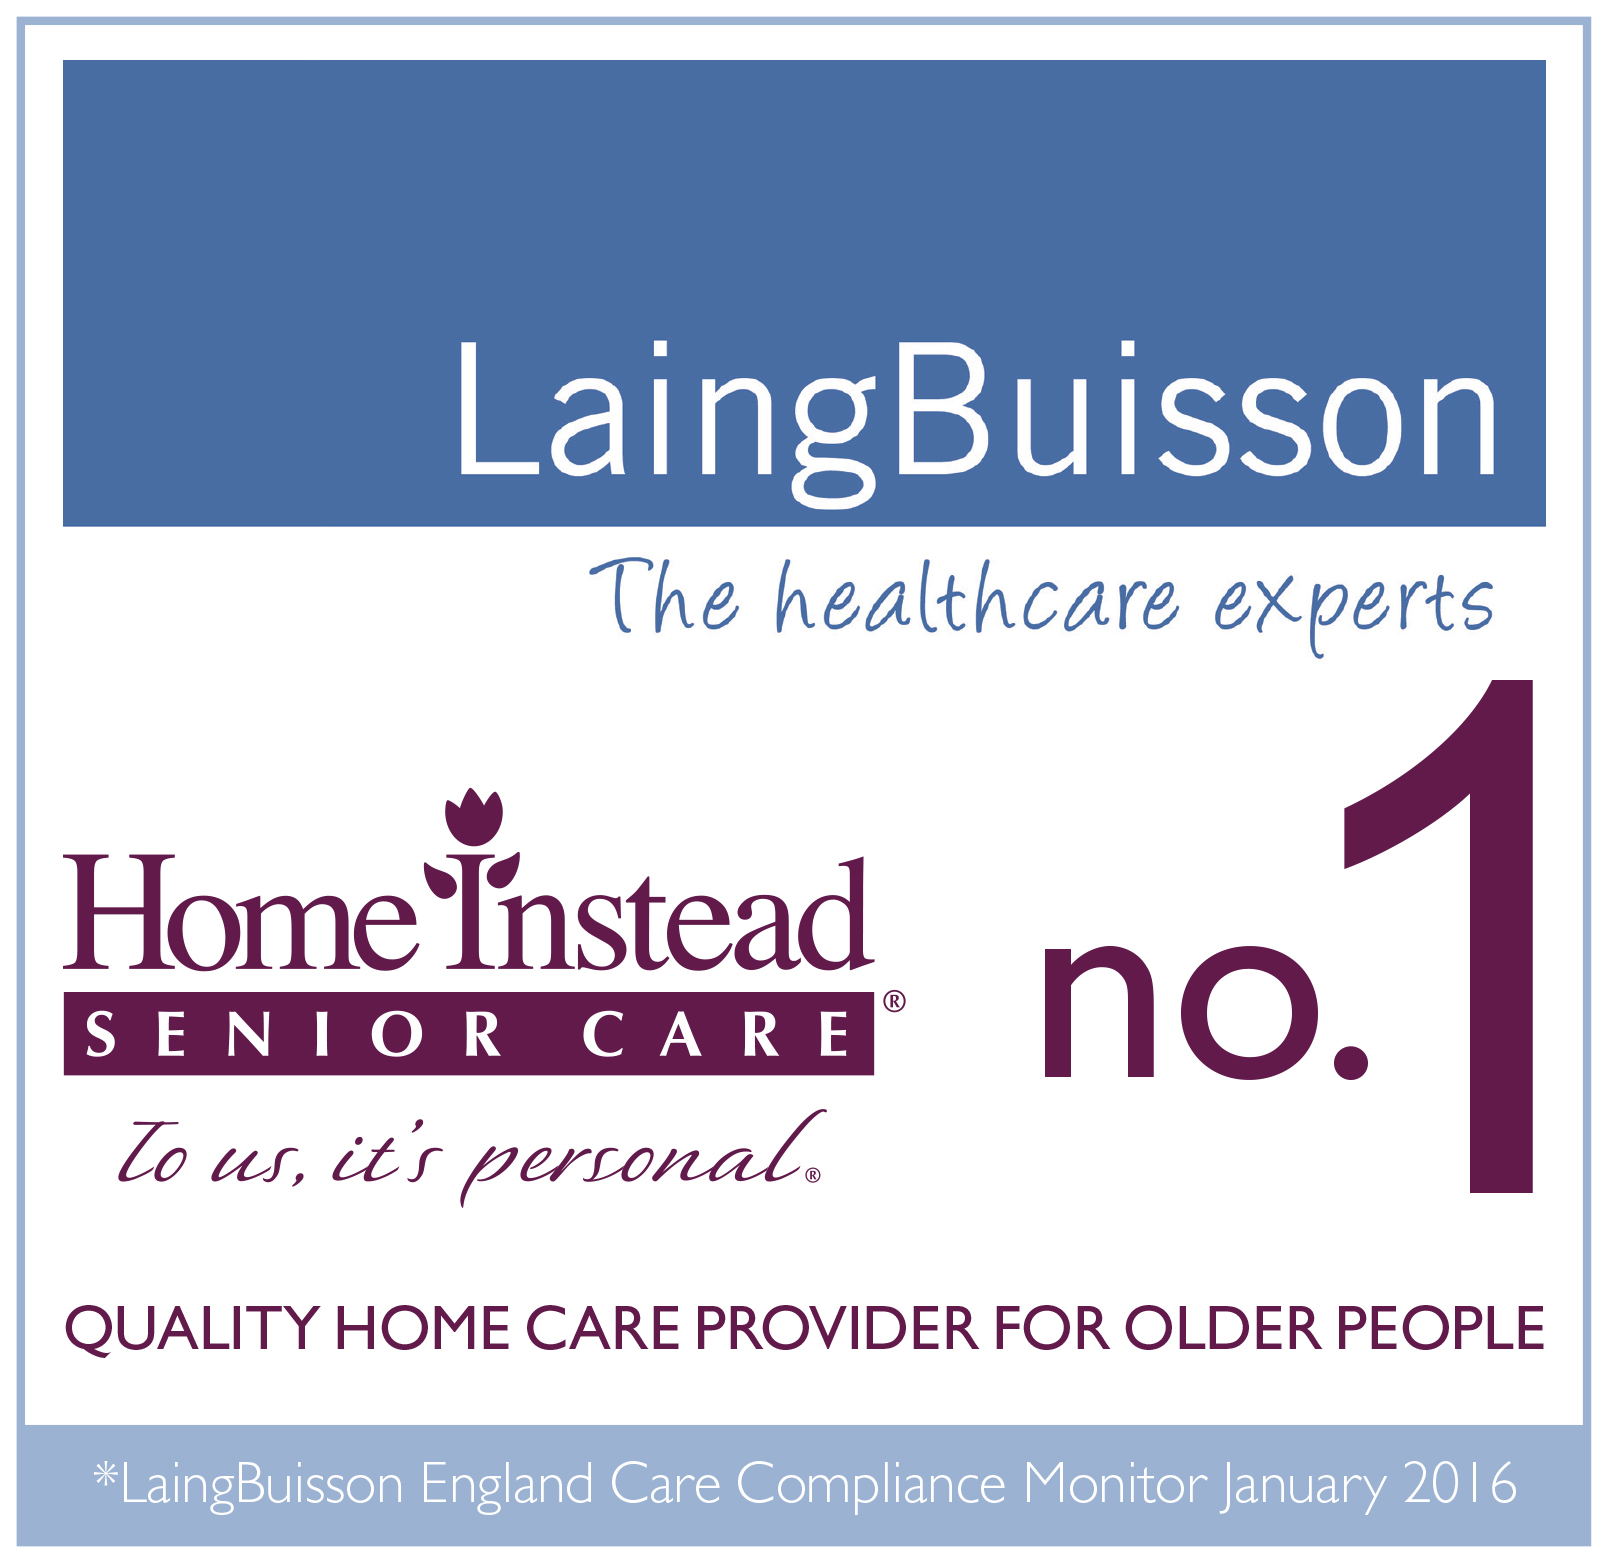 Laing Buisson no.1 Quality Home Care Provider for Older People logo